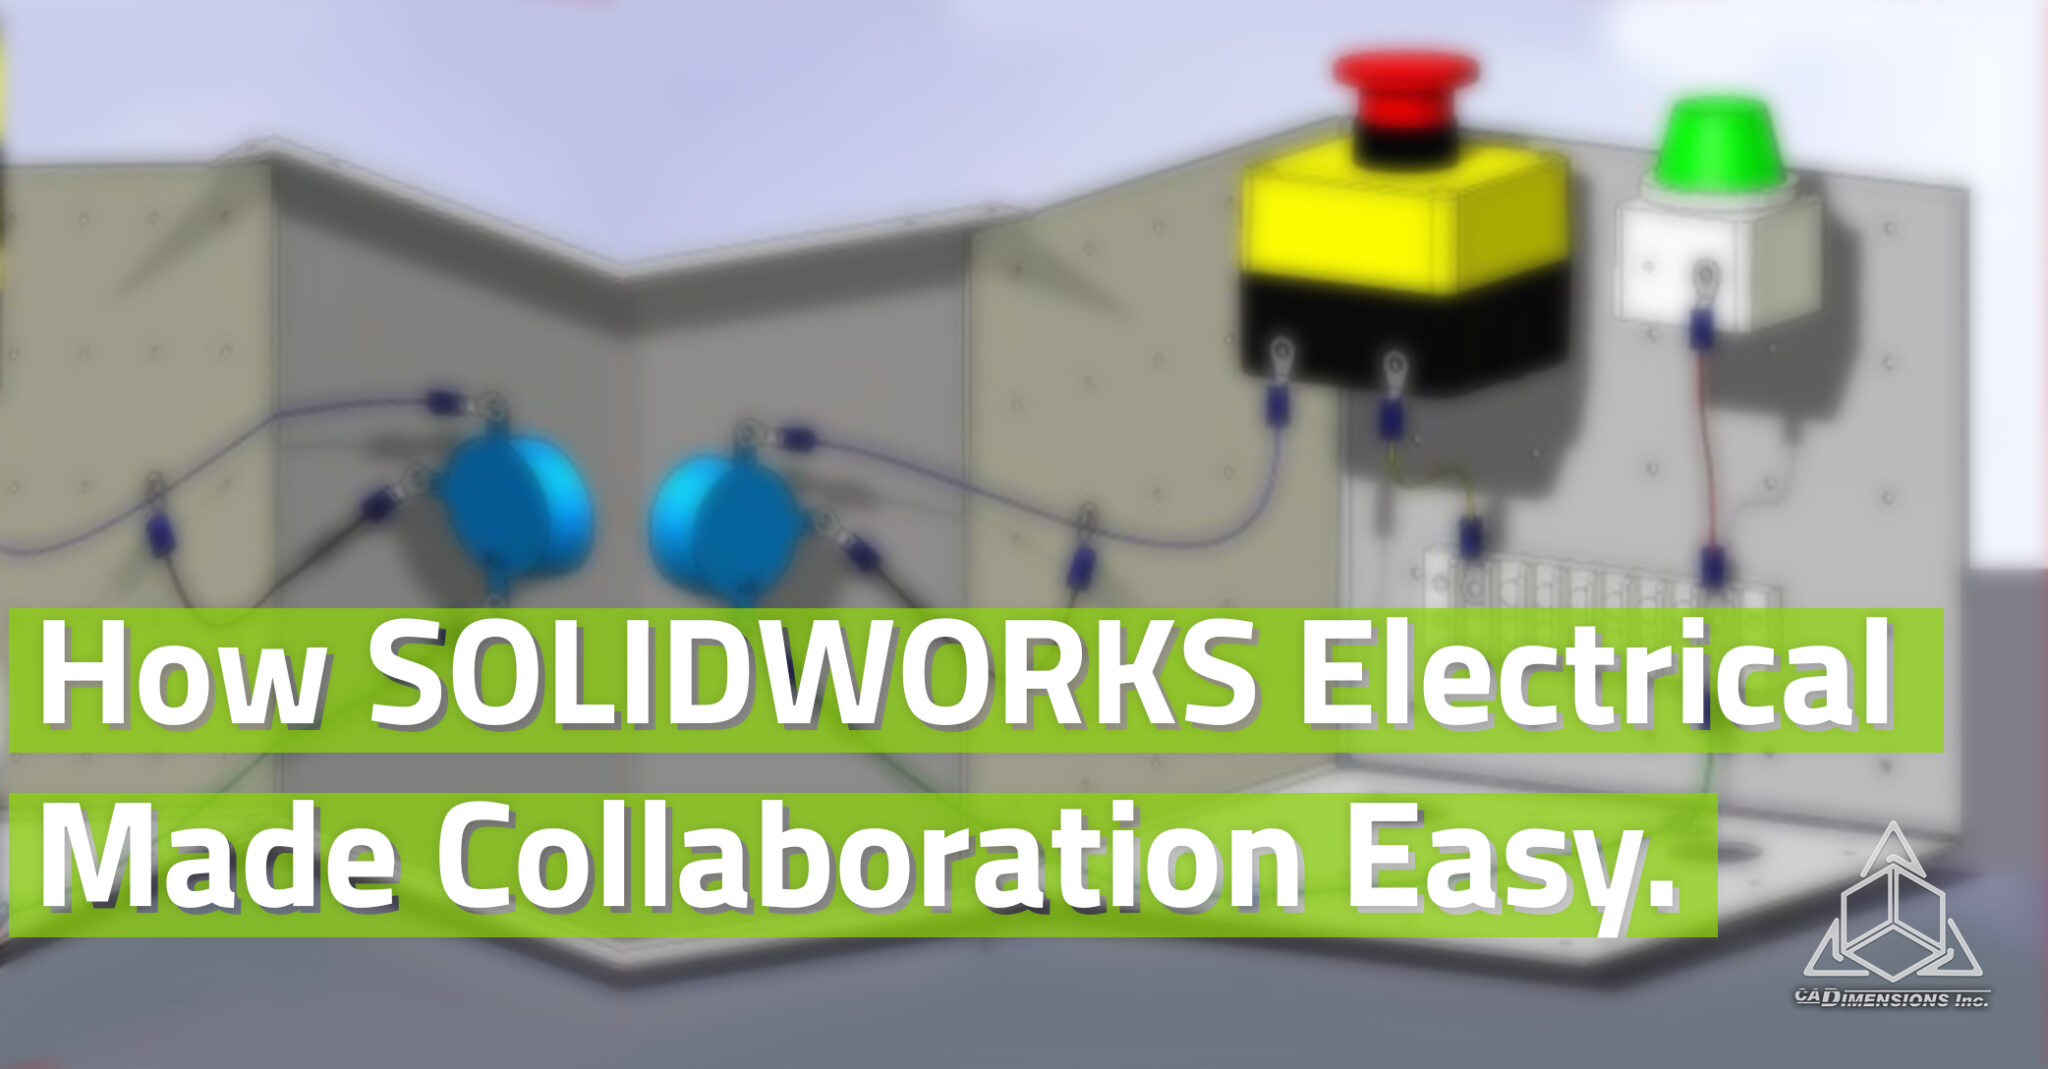 How SOLIDWORKS Made Collaboration Easy with CADimensions